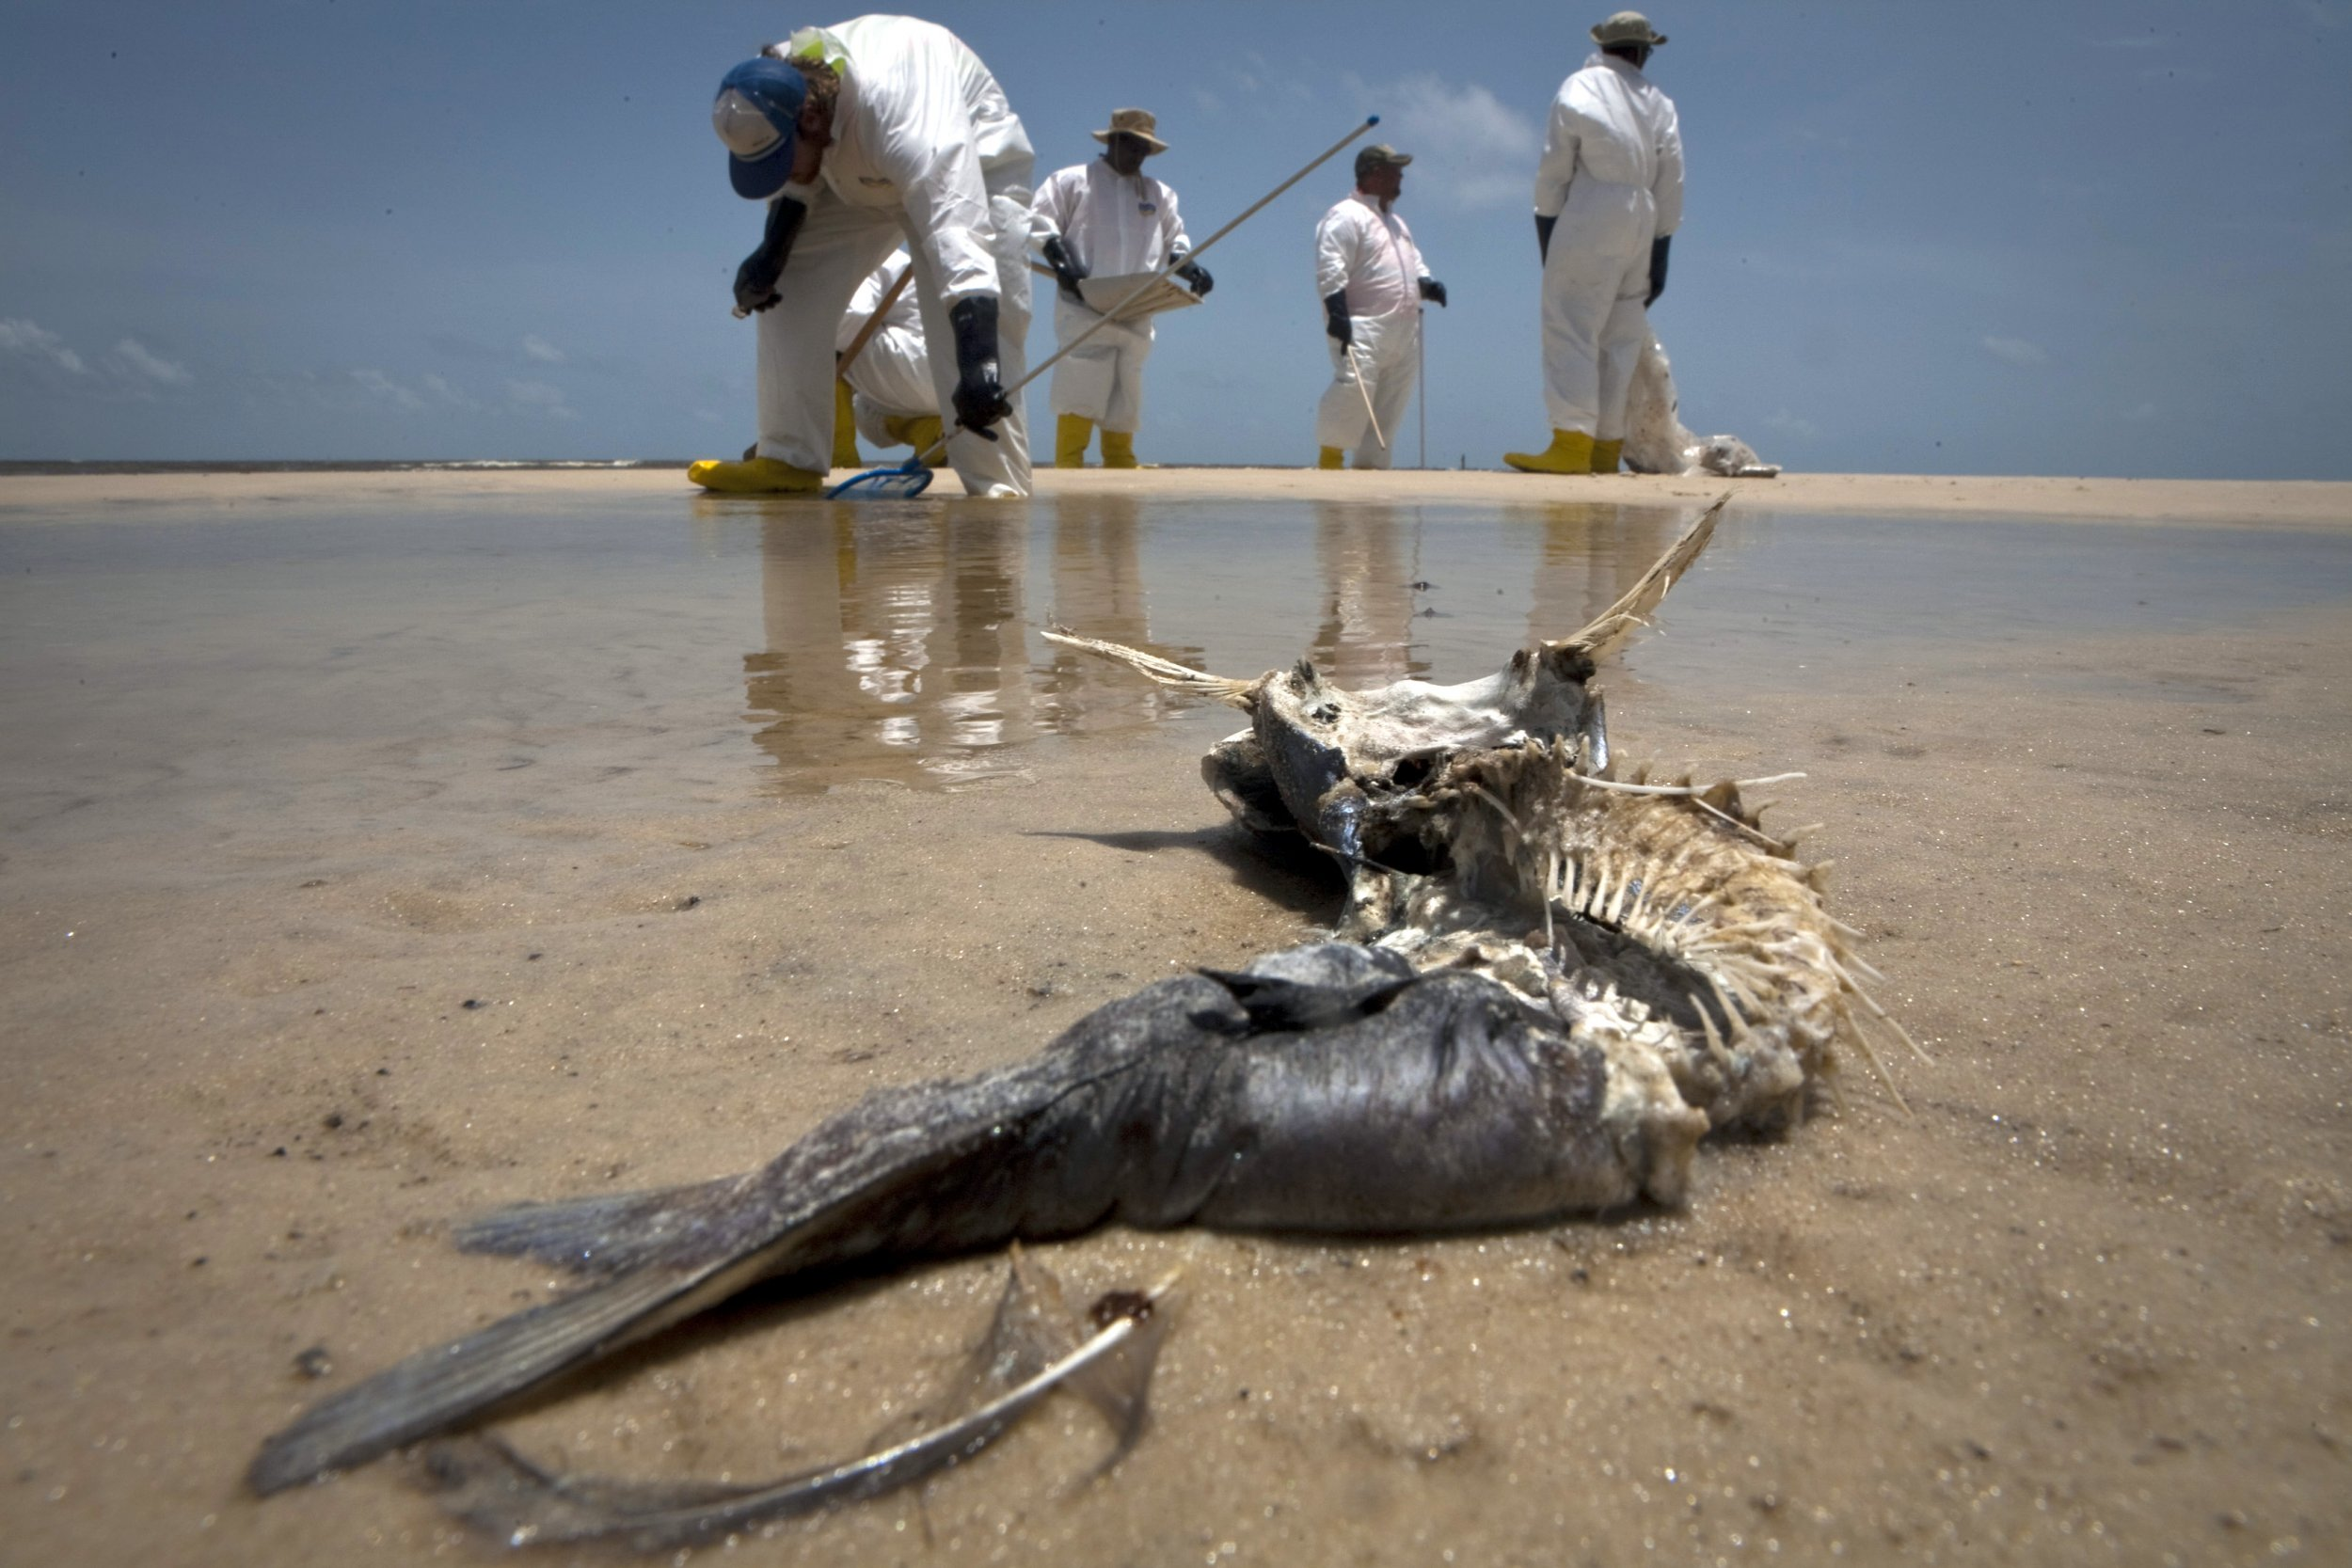 20 Billion From Bp >> BP Reaches Settlement in 2010 Gulf Oil Spill, Agrees to Pay $18.7 Billion in Claims